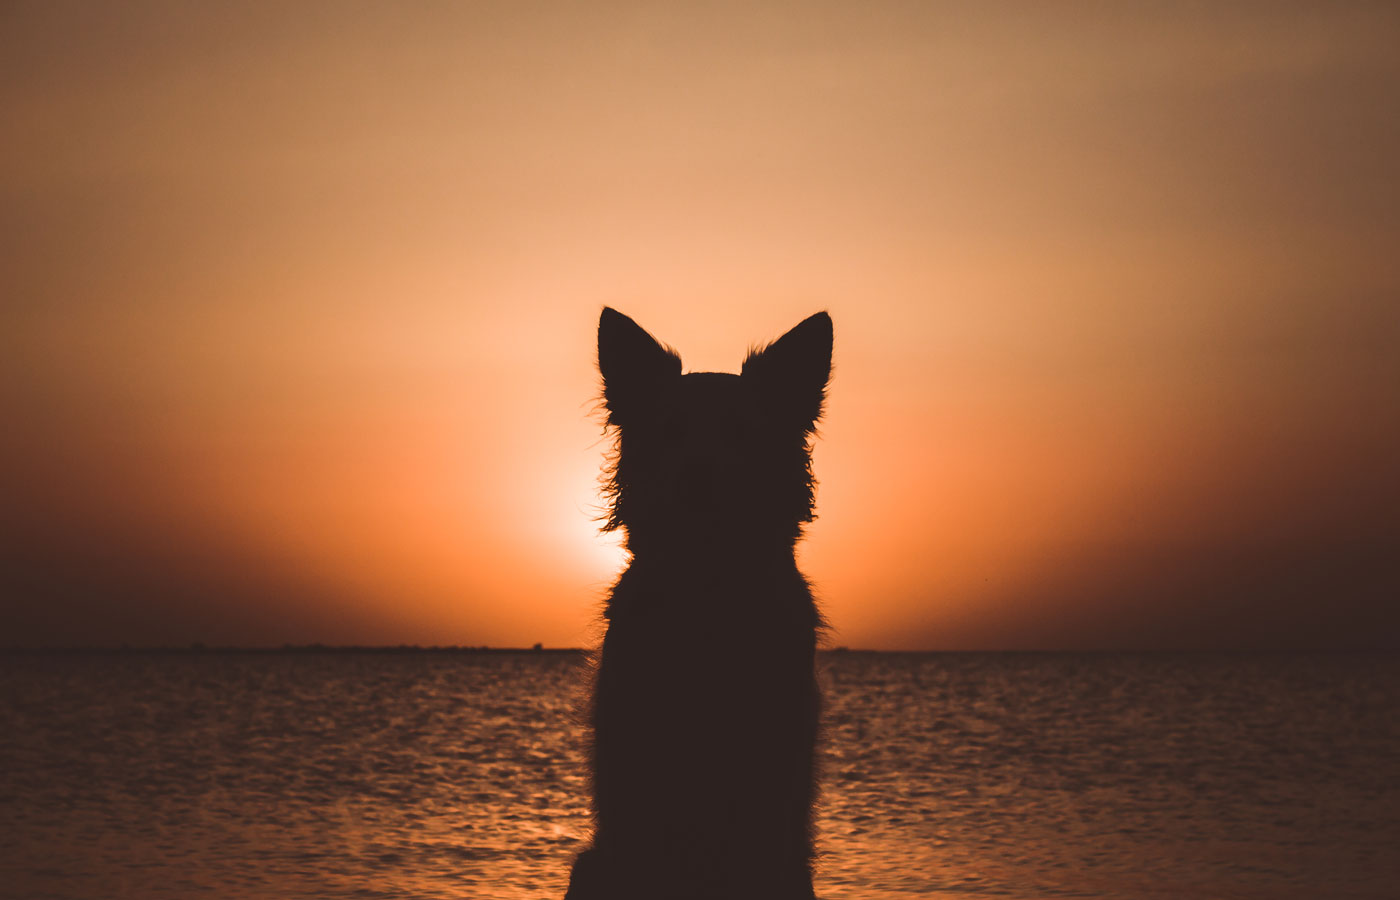 Silhouette of a white berger shepherd dog. Dog sits and looks at beautiful golden sunset (sunrise) near the ocean